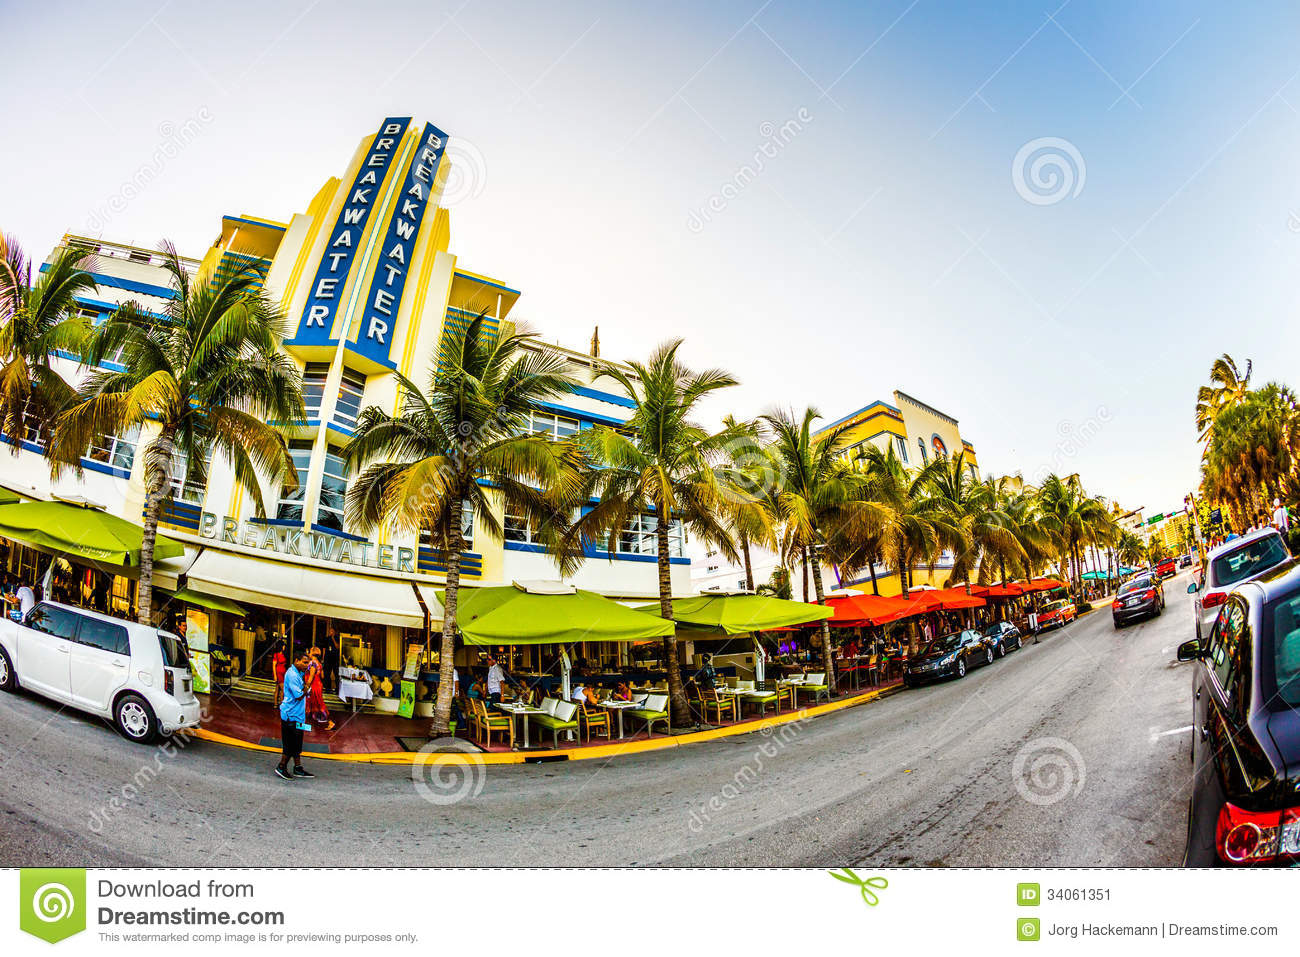 Visit South Beach: Best of South Beach Tourism   Expedia ...